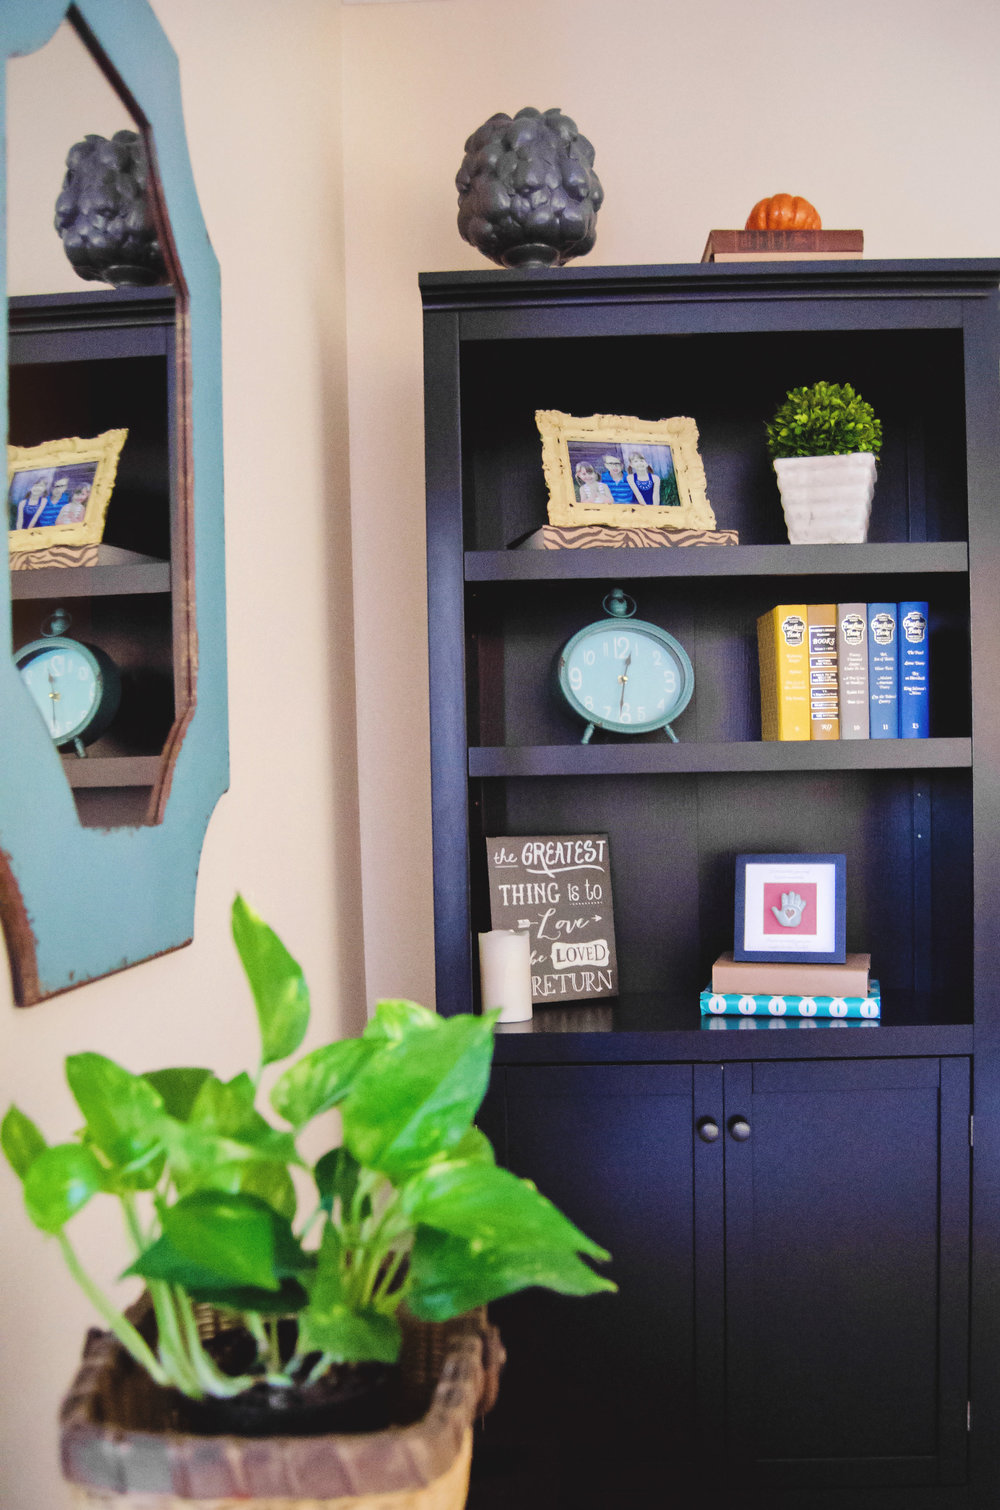 Bookshelf styling with pops of color. | hprallandco.com